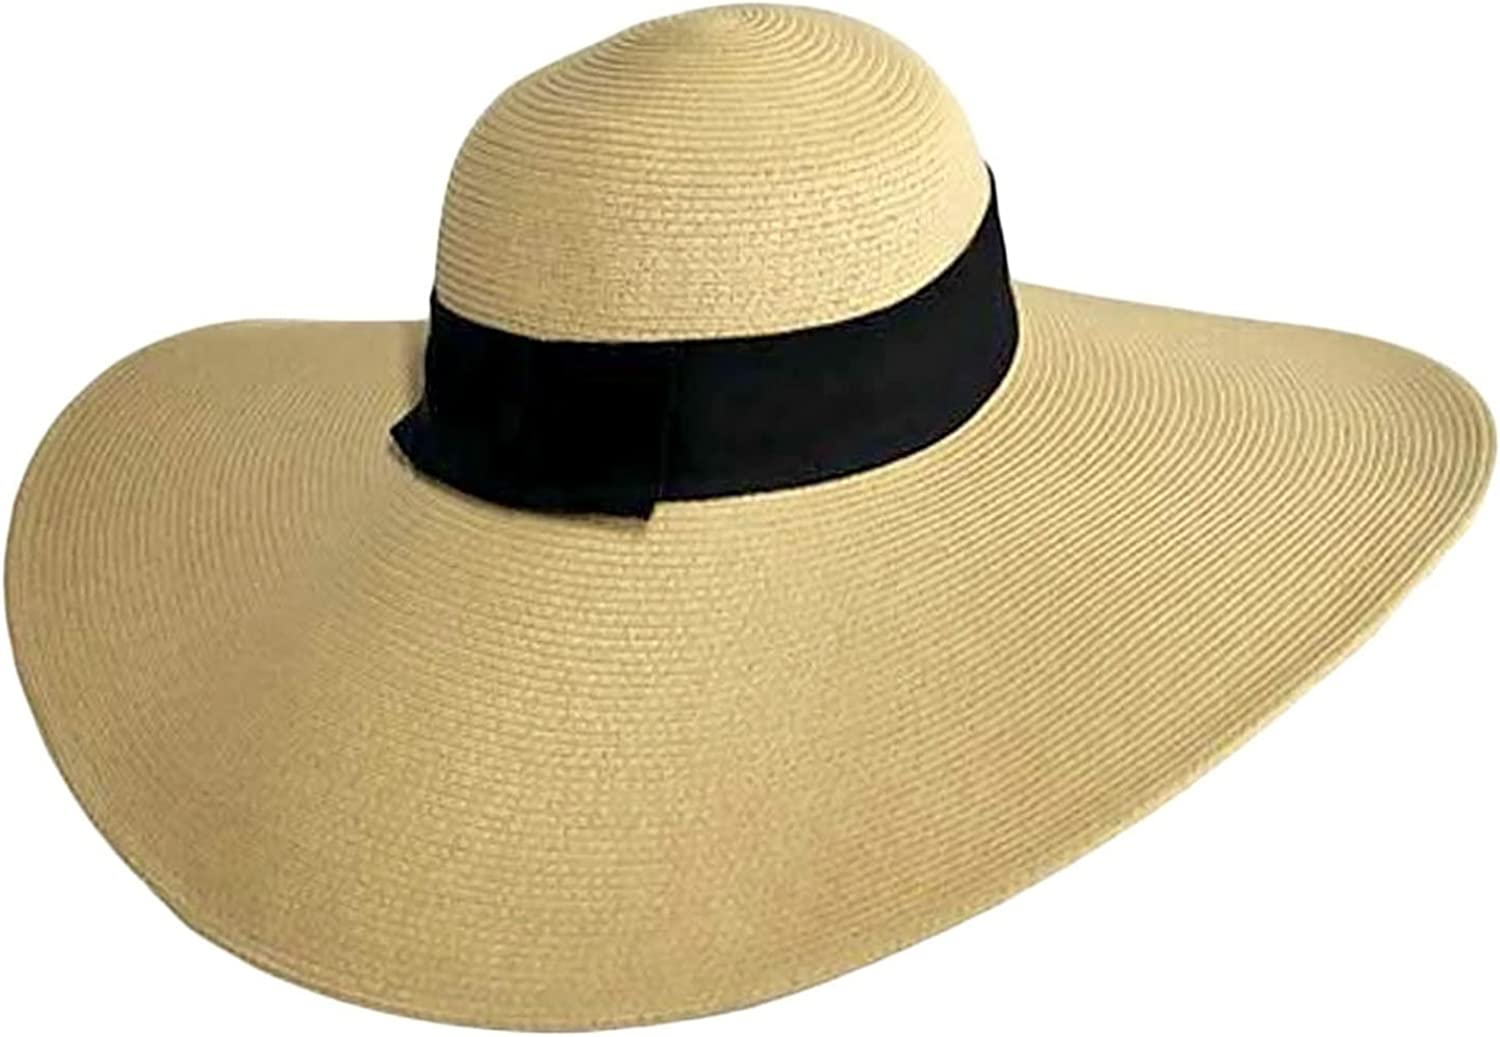 Luxury Divas Tan Wide Brimmed Floppy Hat with Black Ribbon Hat Band